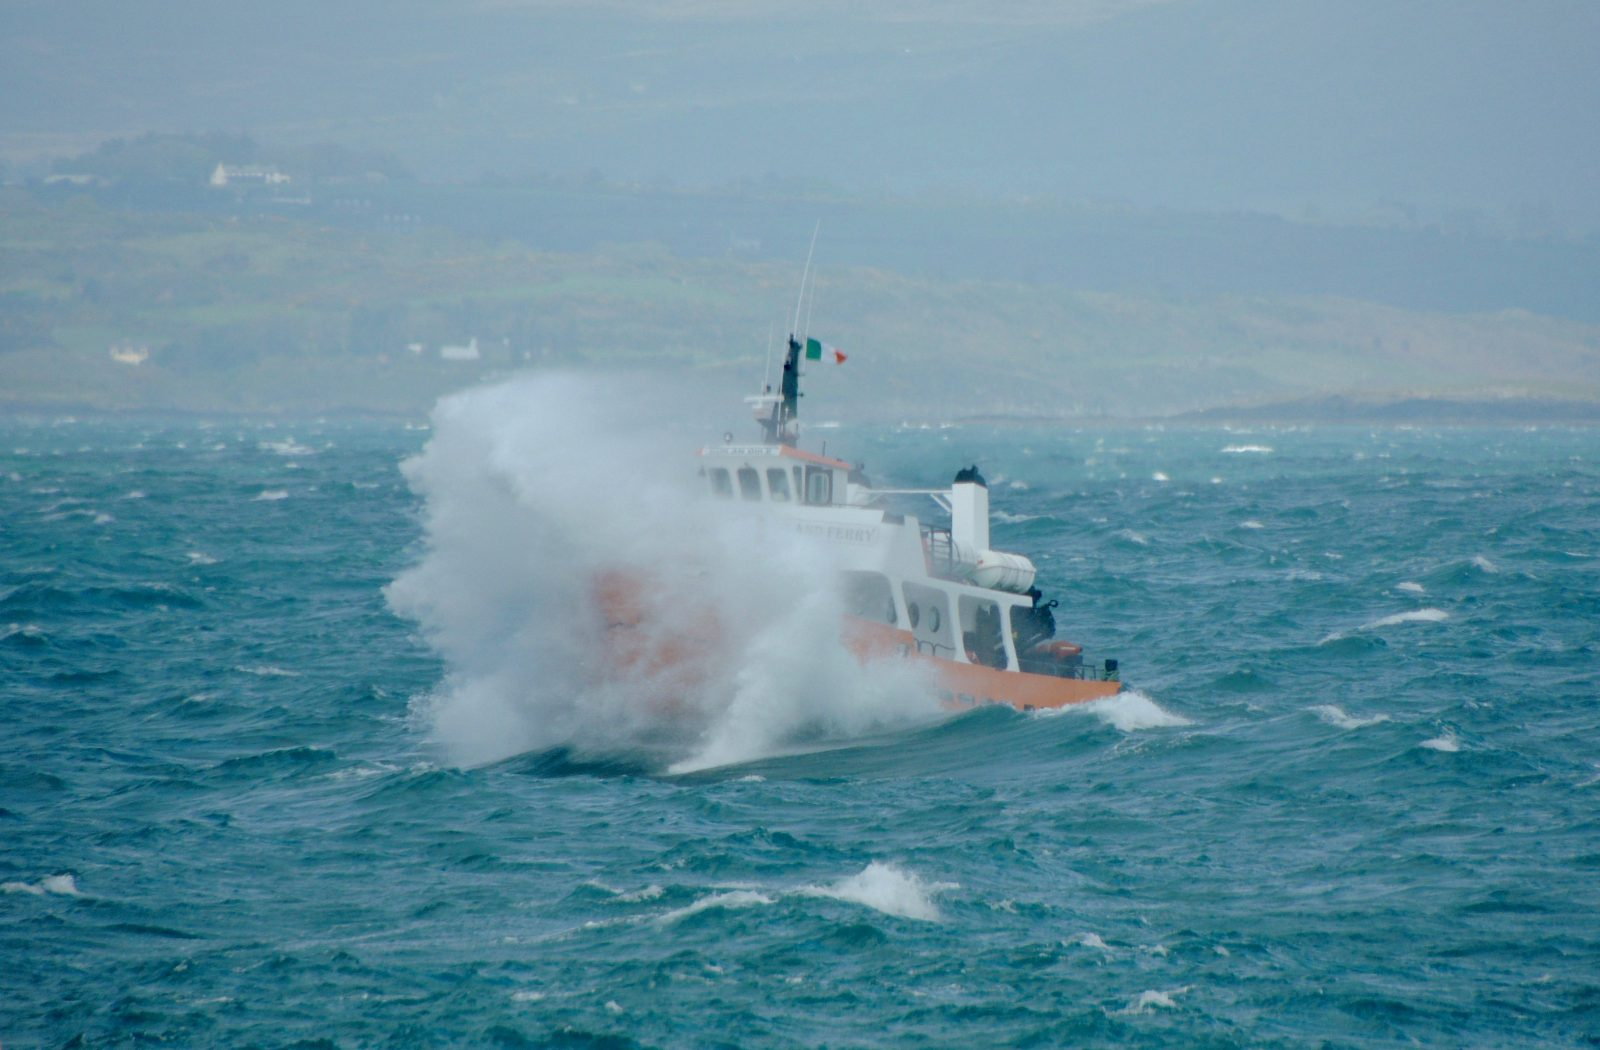 Boat in Rough Seas (Pic: Mary Cadogan)